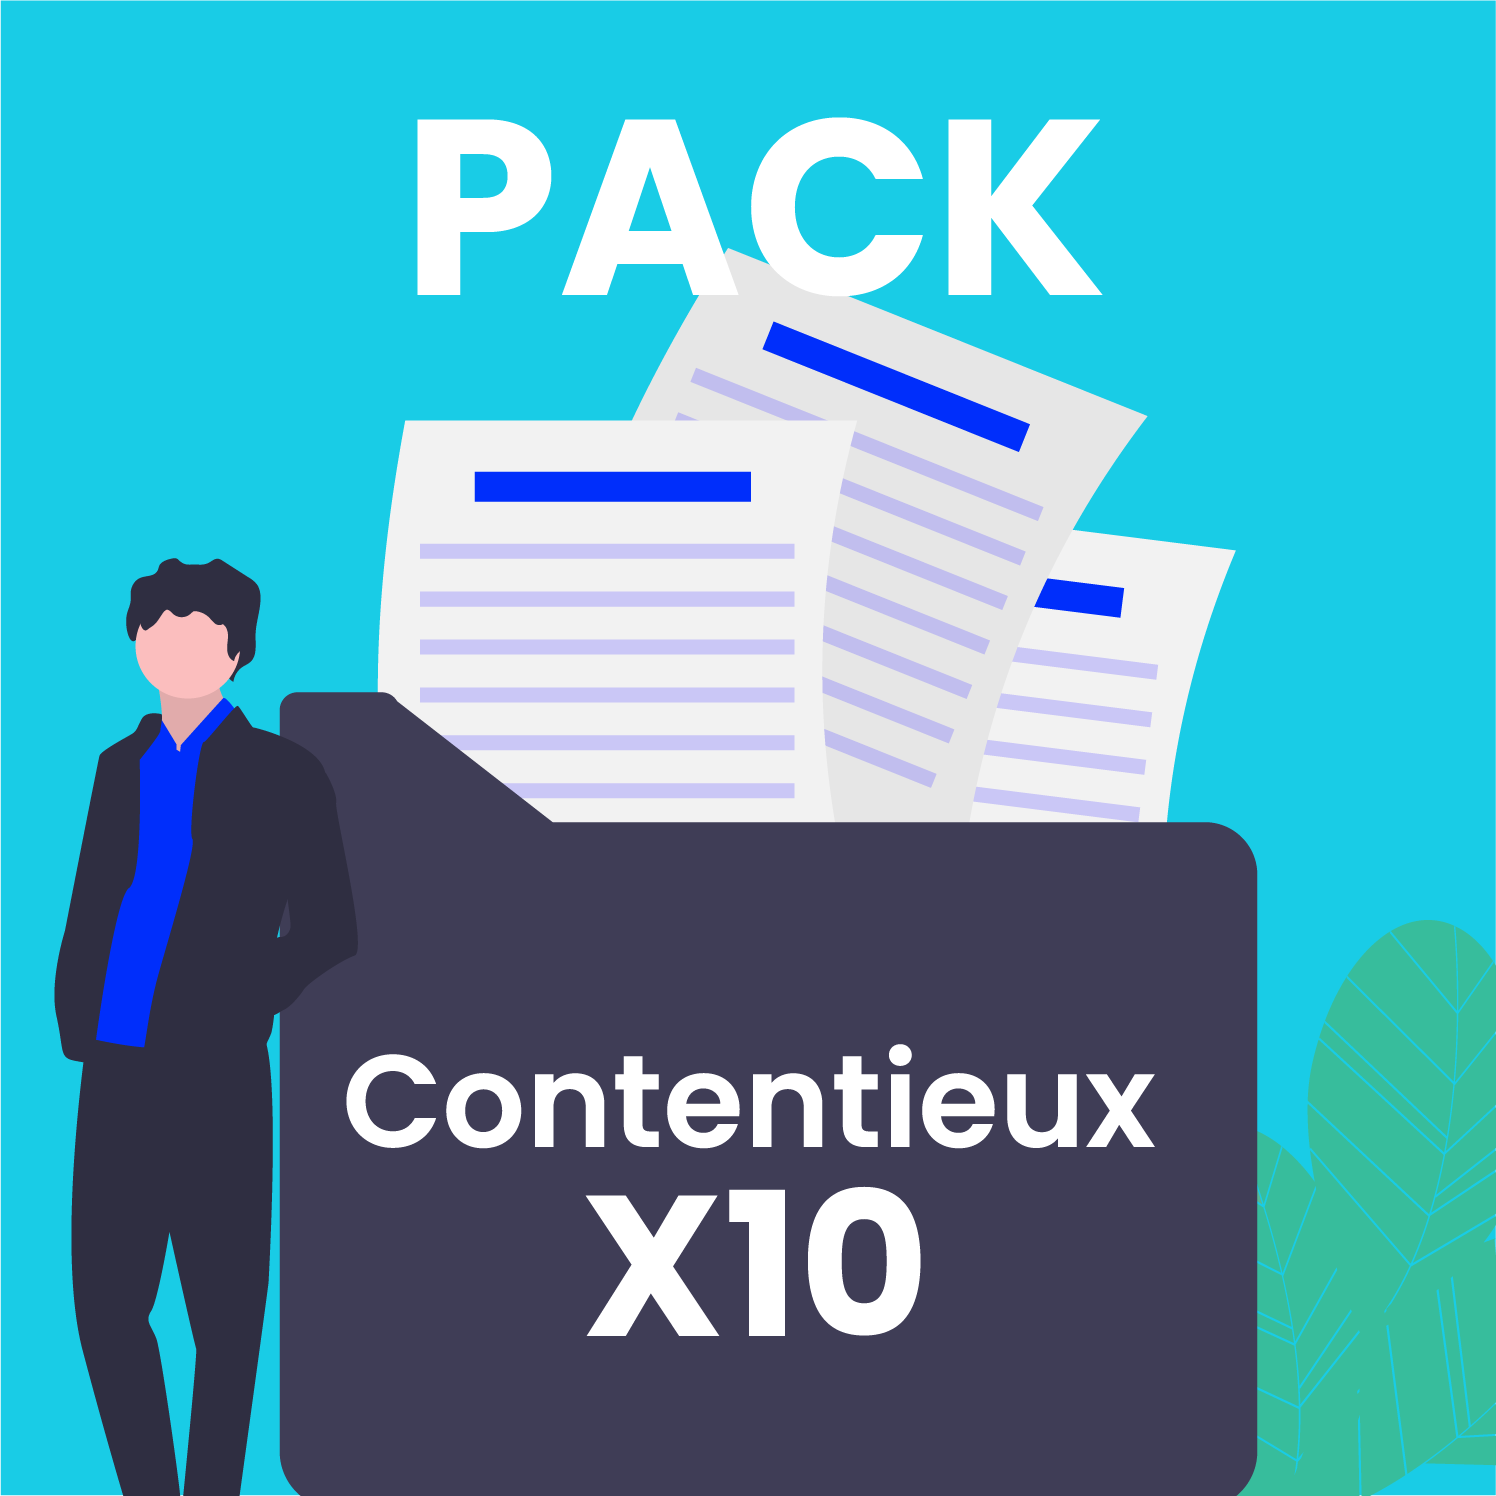 Pack contentieux x10